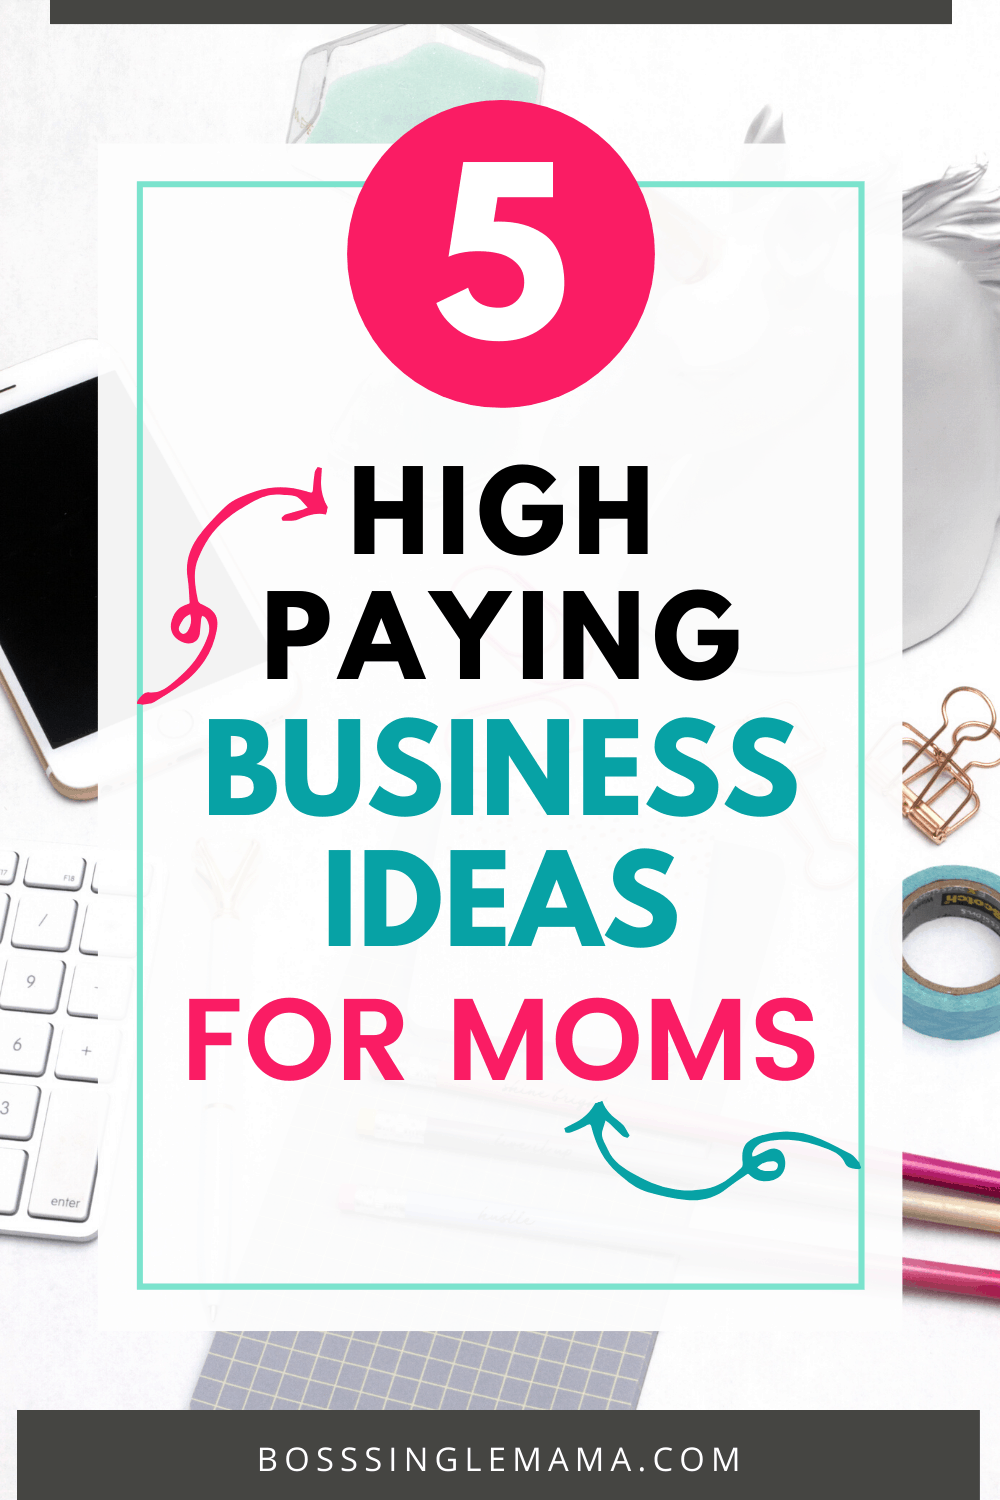 5 Legit Business Ideas For Moms You Can Start To Earn 5 000 Monthly Boss Single Mama